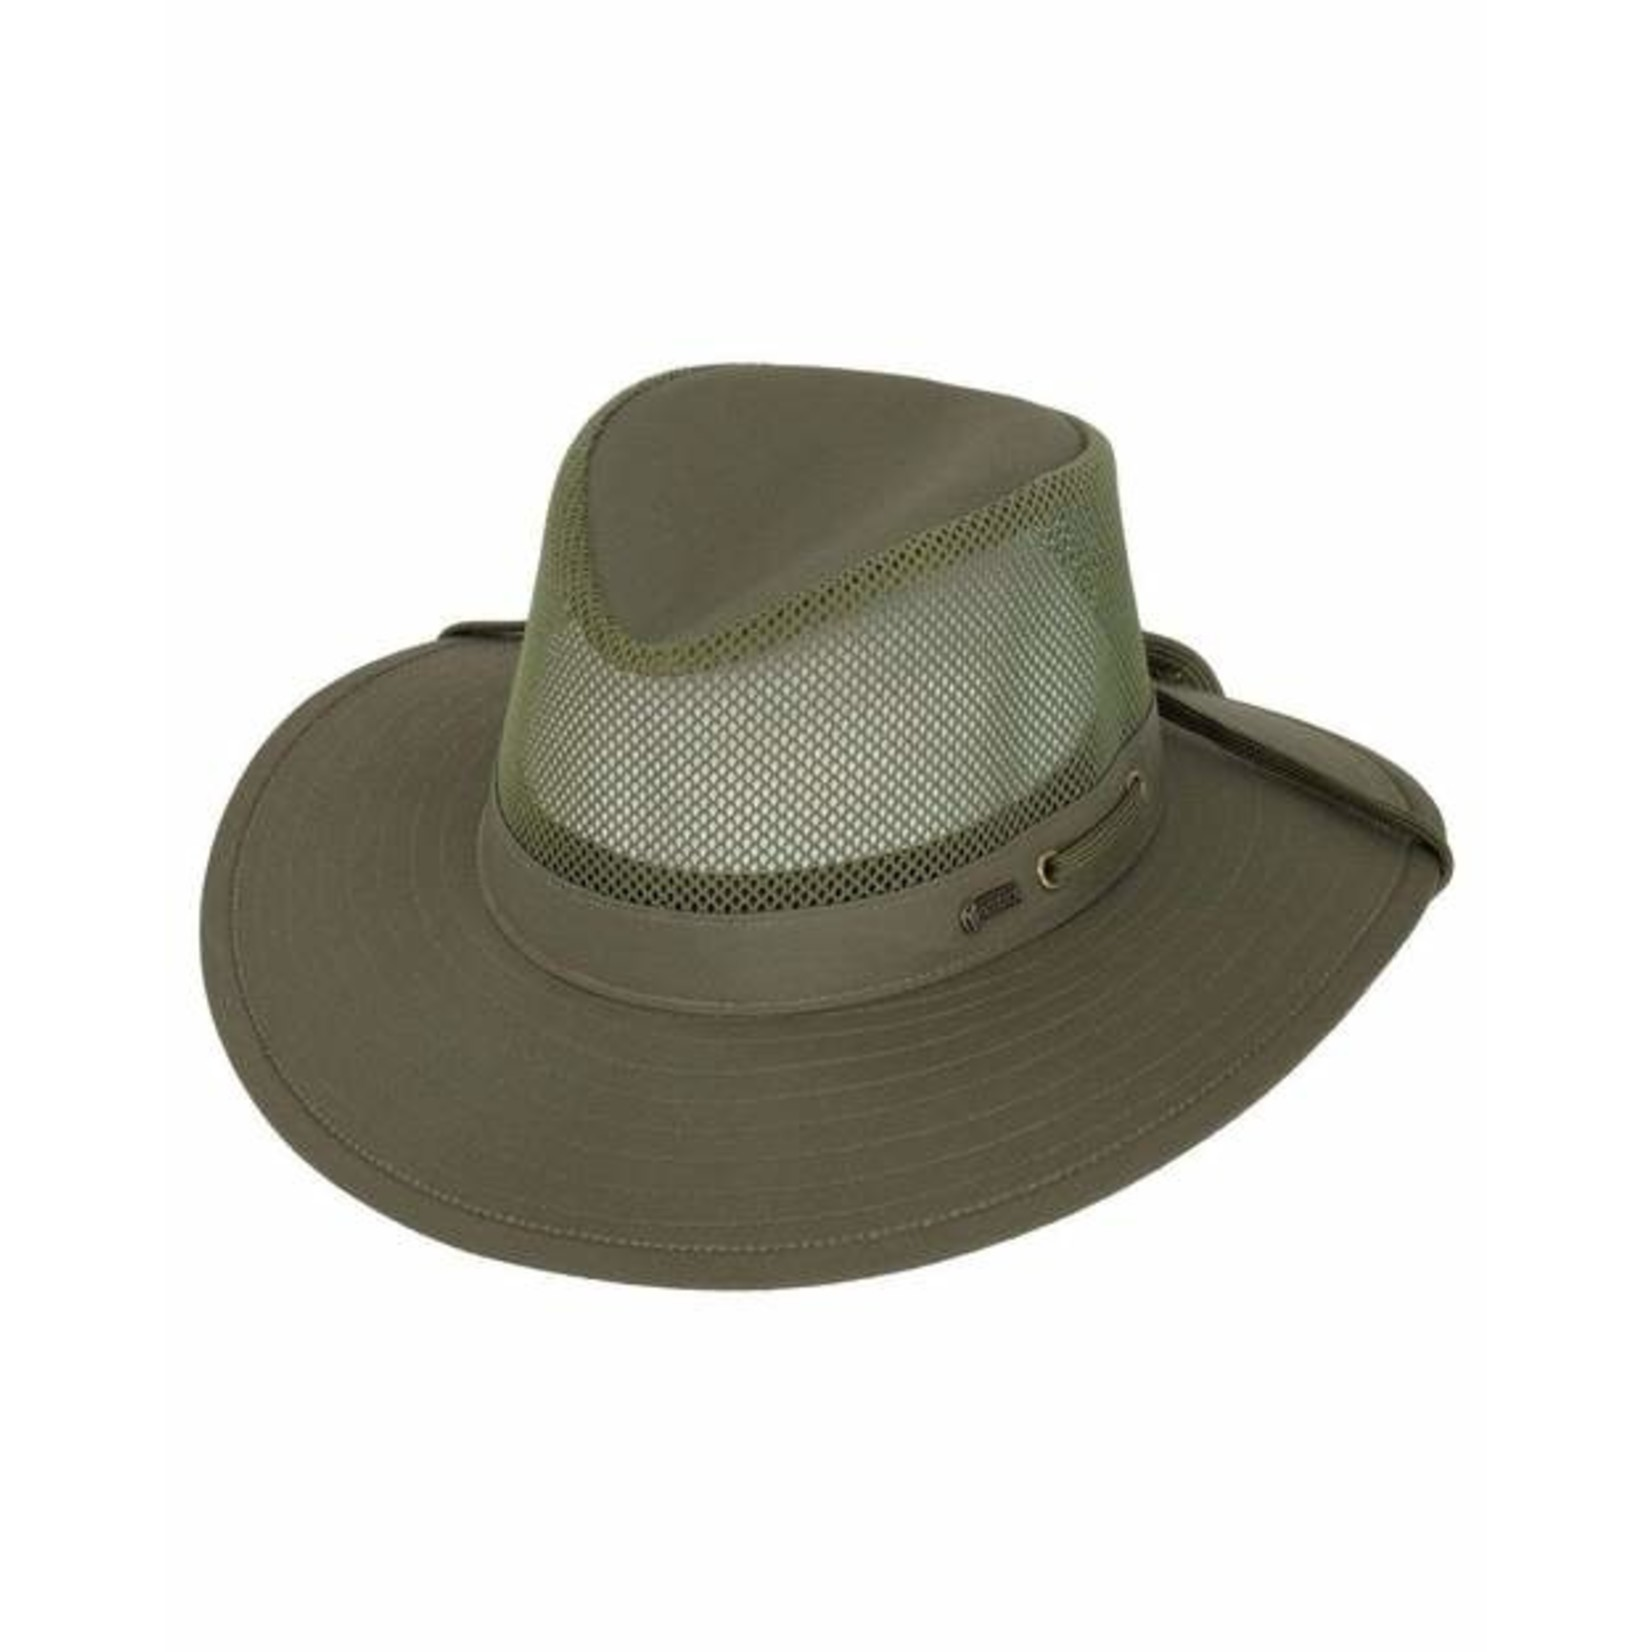 Outback river Guide Hat Mesh II 14726